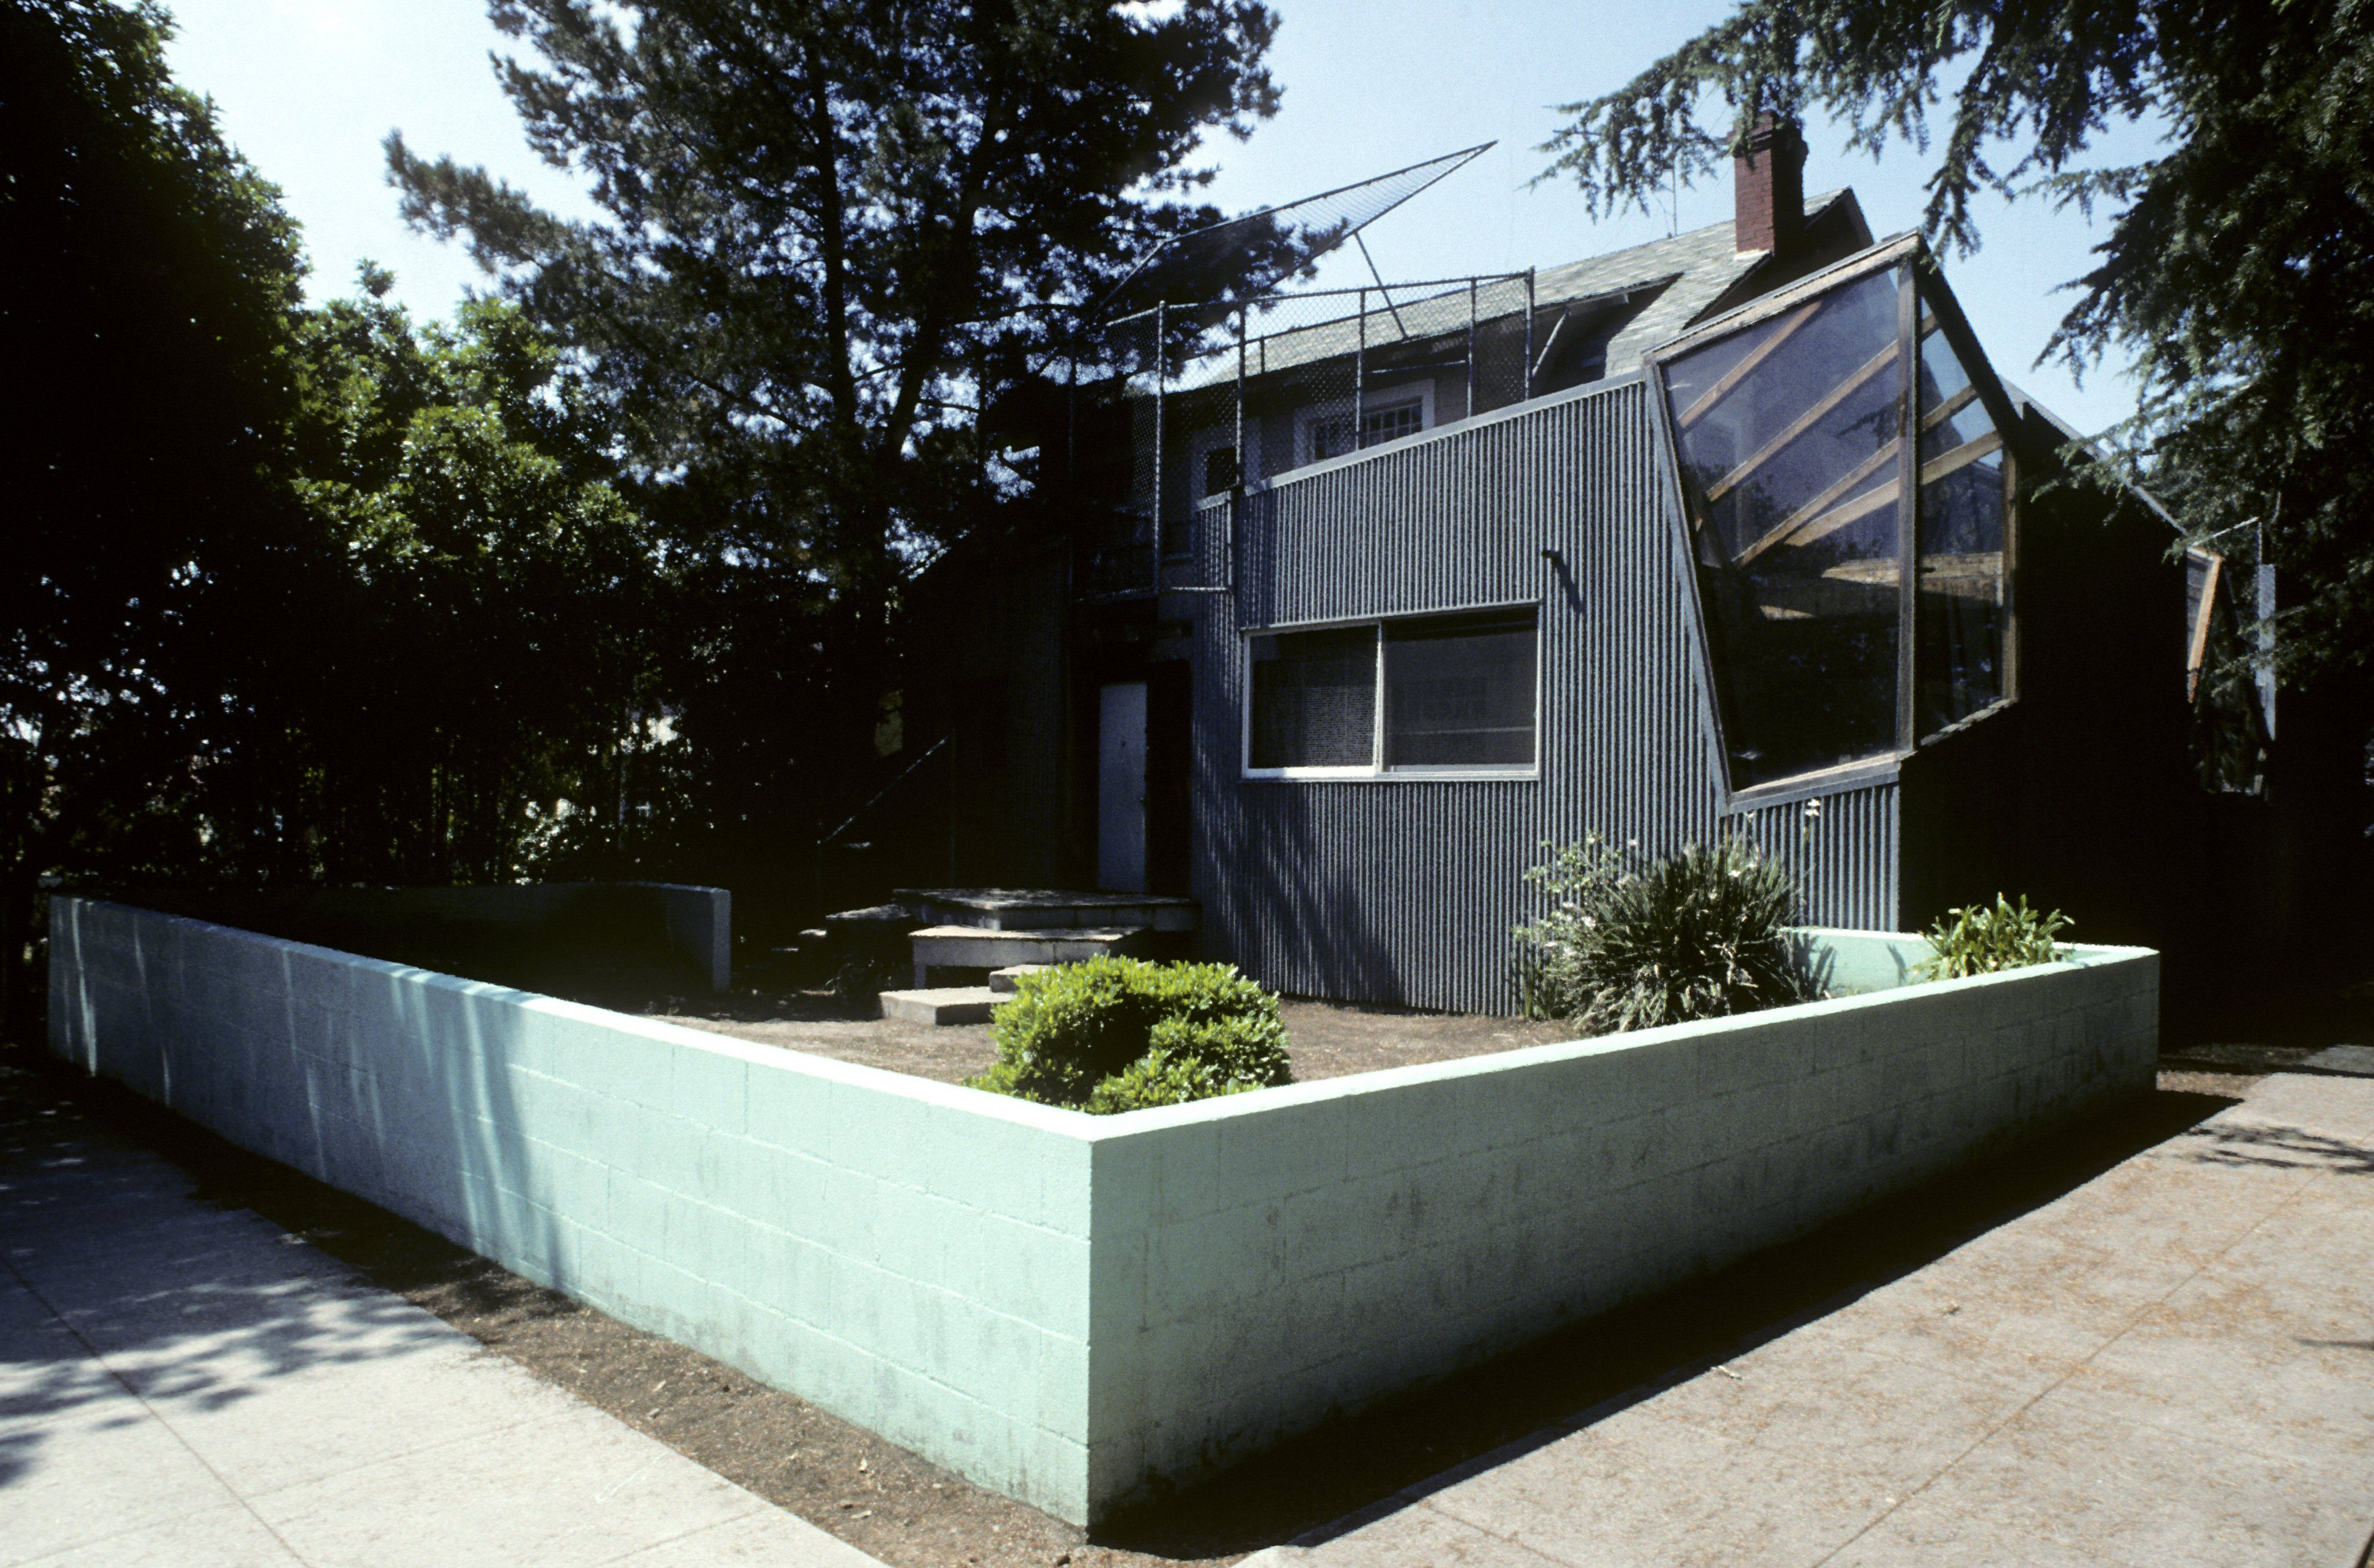 Frank Gehry's personal home with concrete retaining wall surrounding the yard